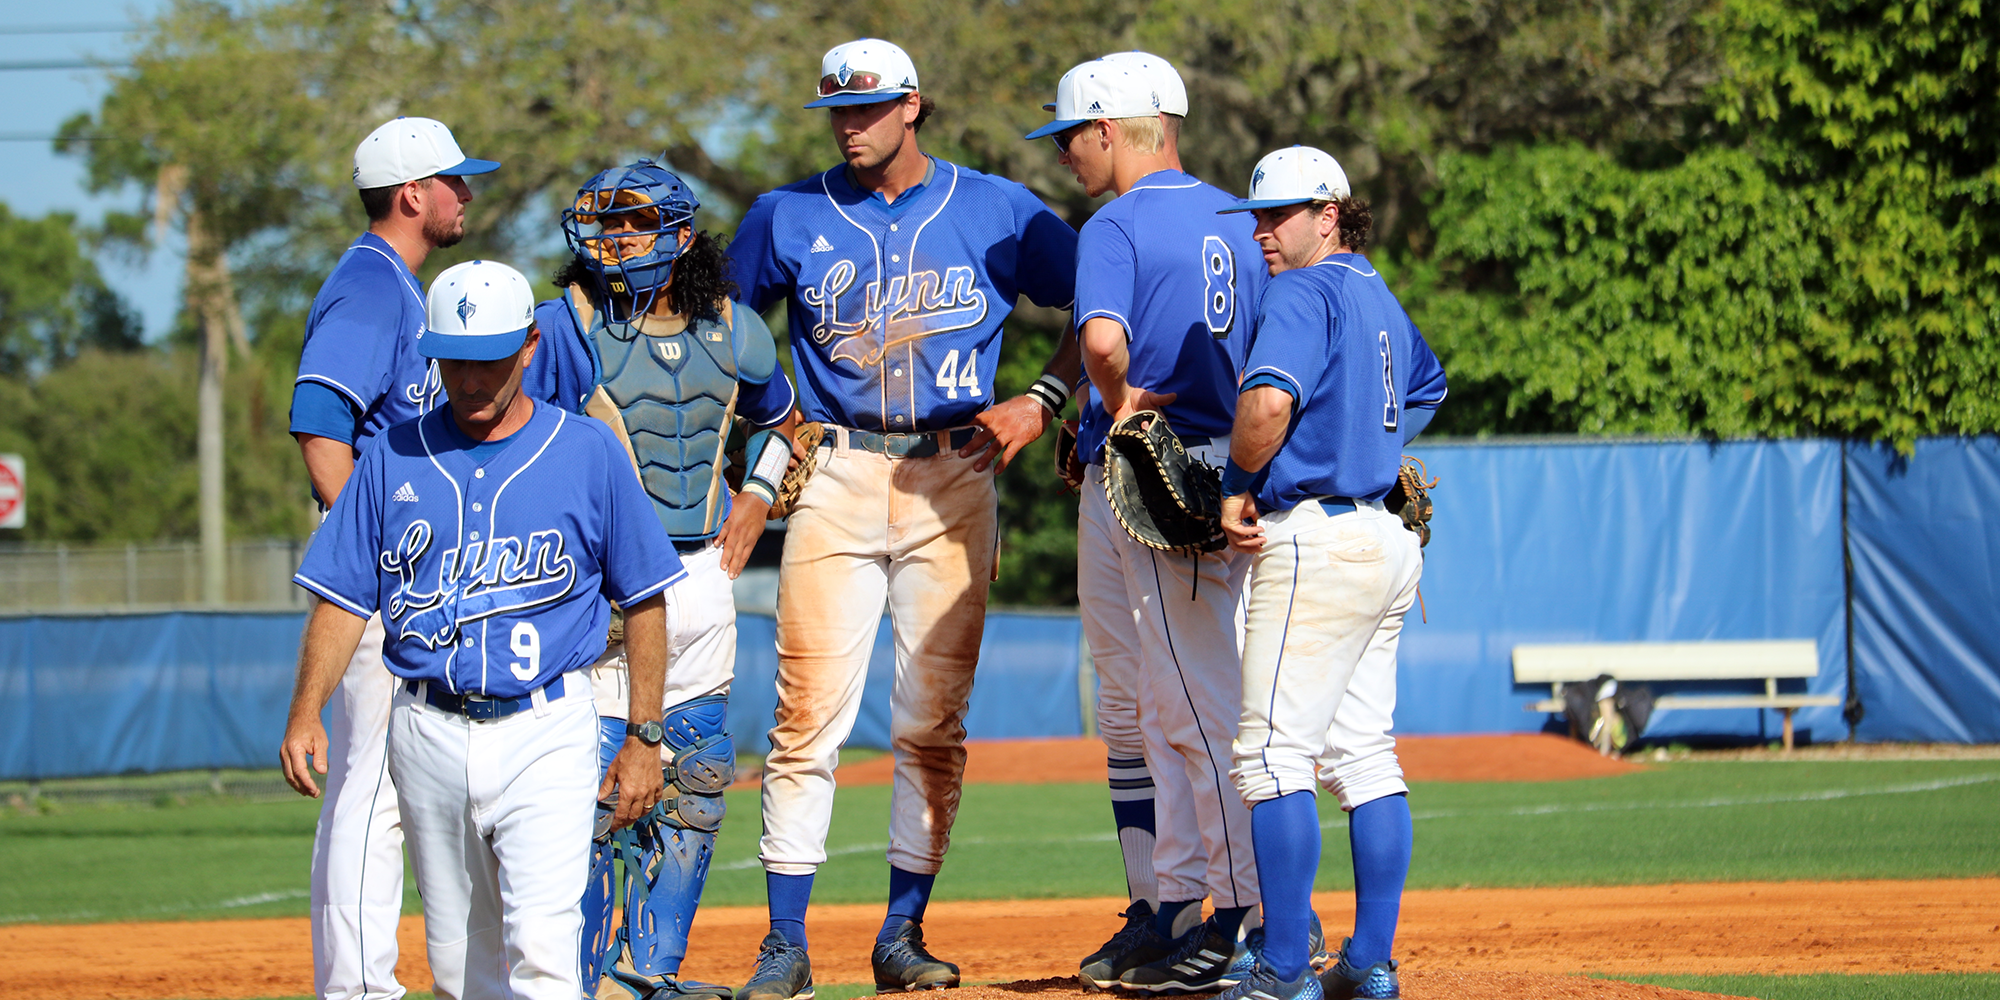 Lions Down Baseball in SSC Opener with Extra-Inning Grand Slam